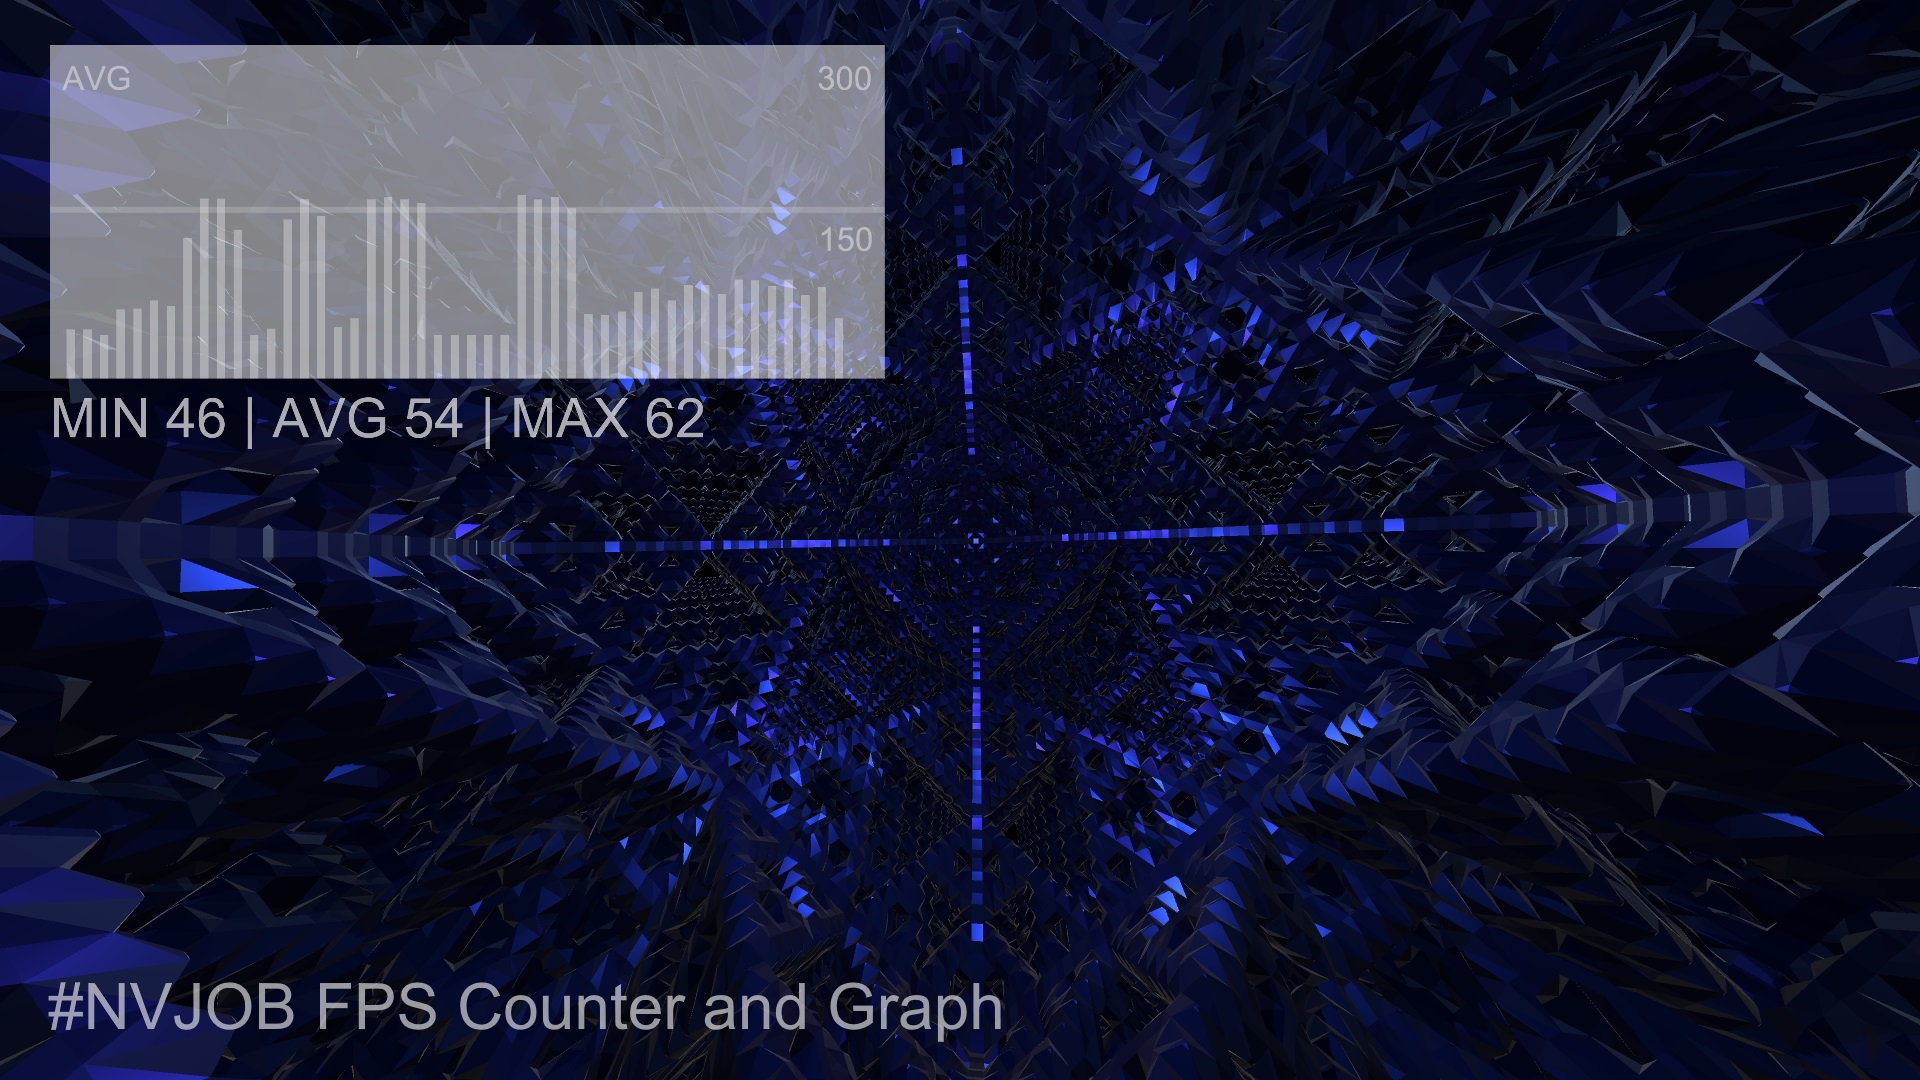 #NVJOB FPS Counter and Graph